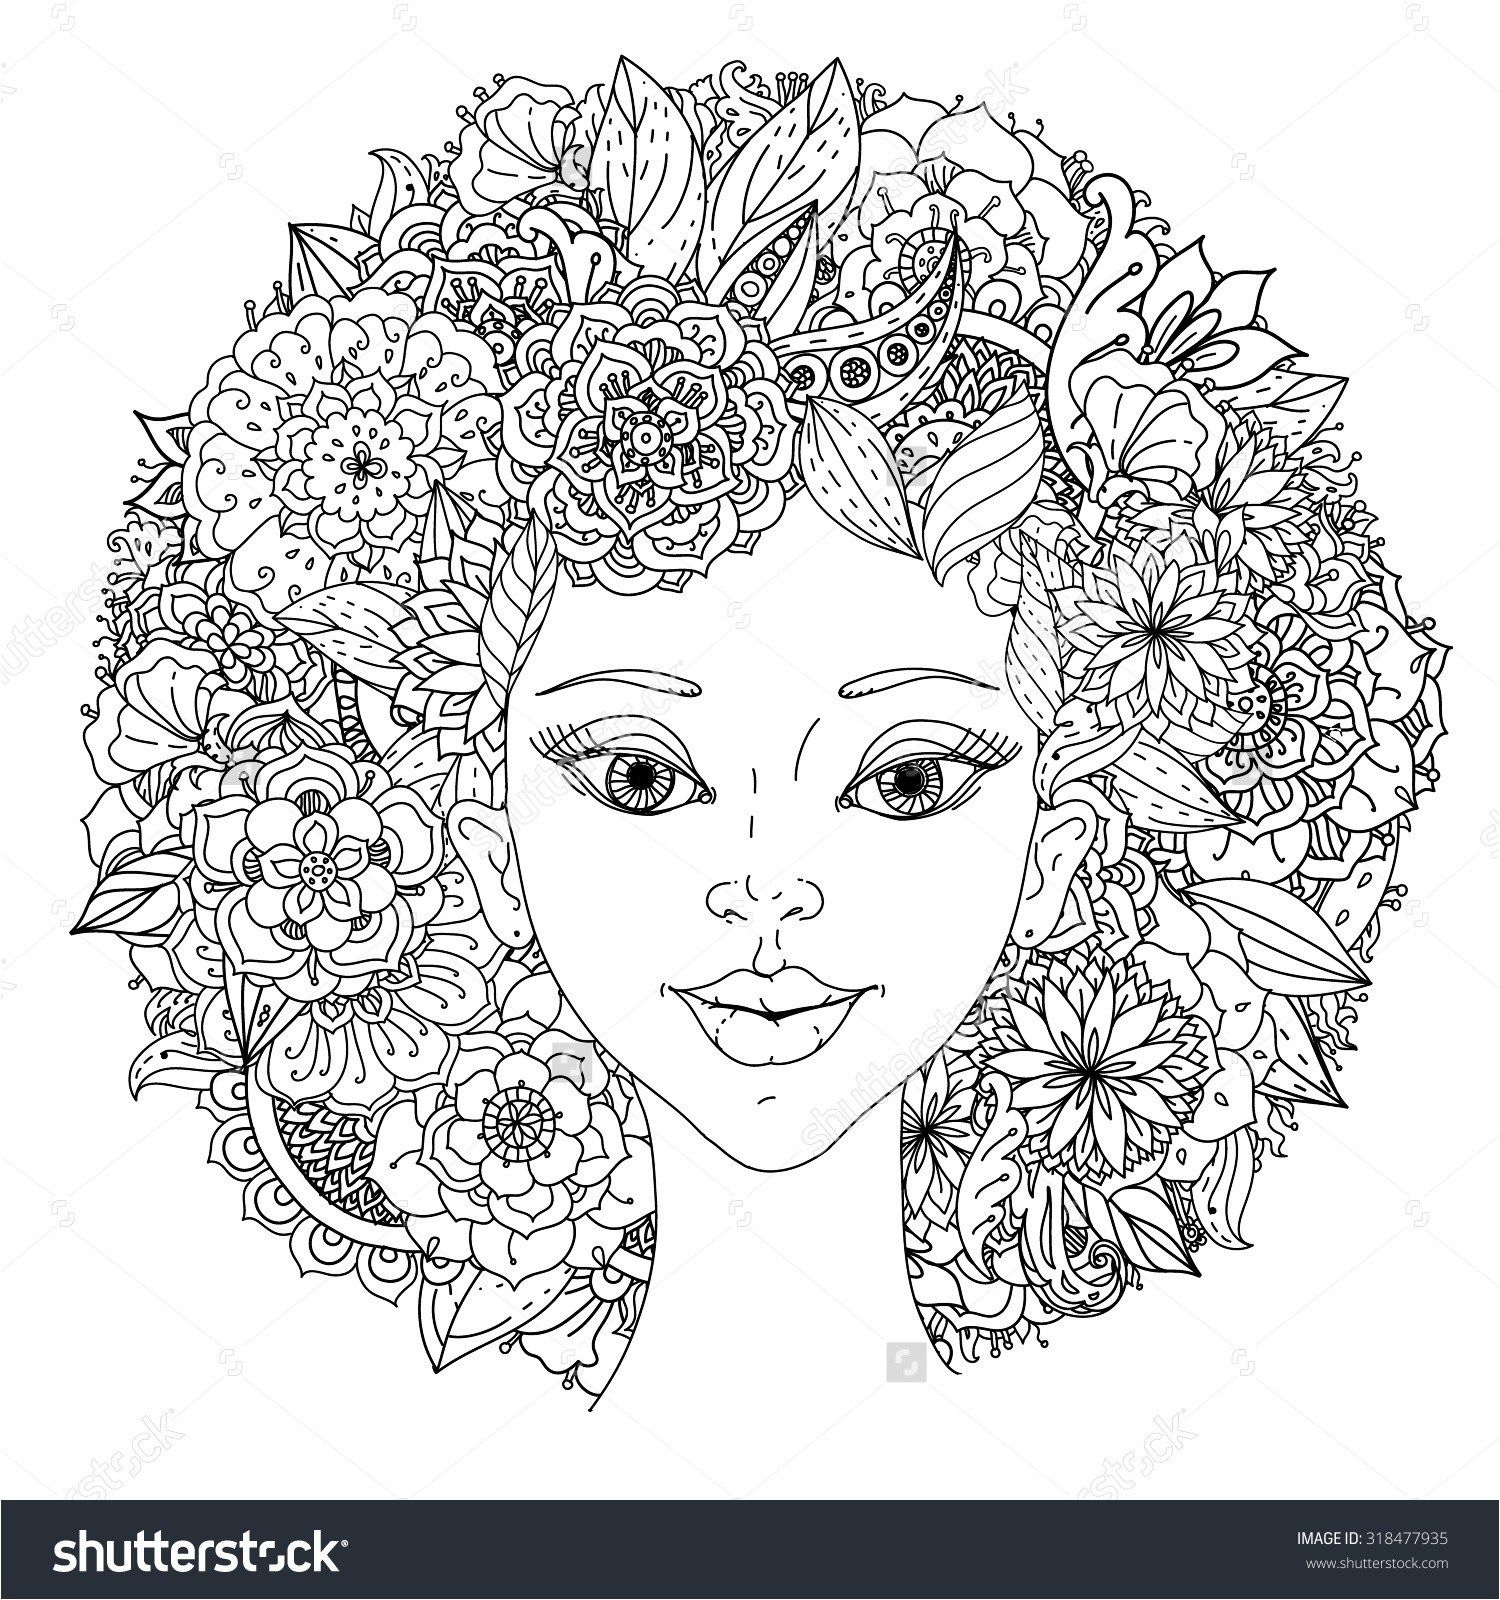 24 Best Picture Of Recolor Coloring Pages Davemelillo Com Designs Coloring Books Coloring Books Coloring Pages